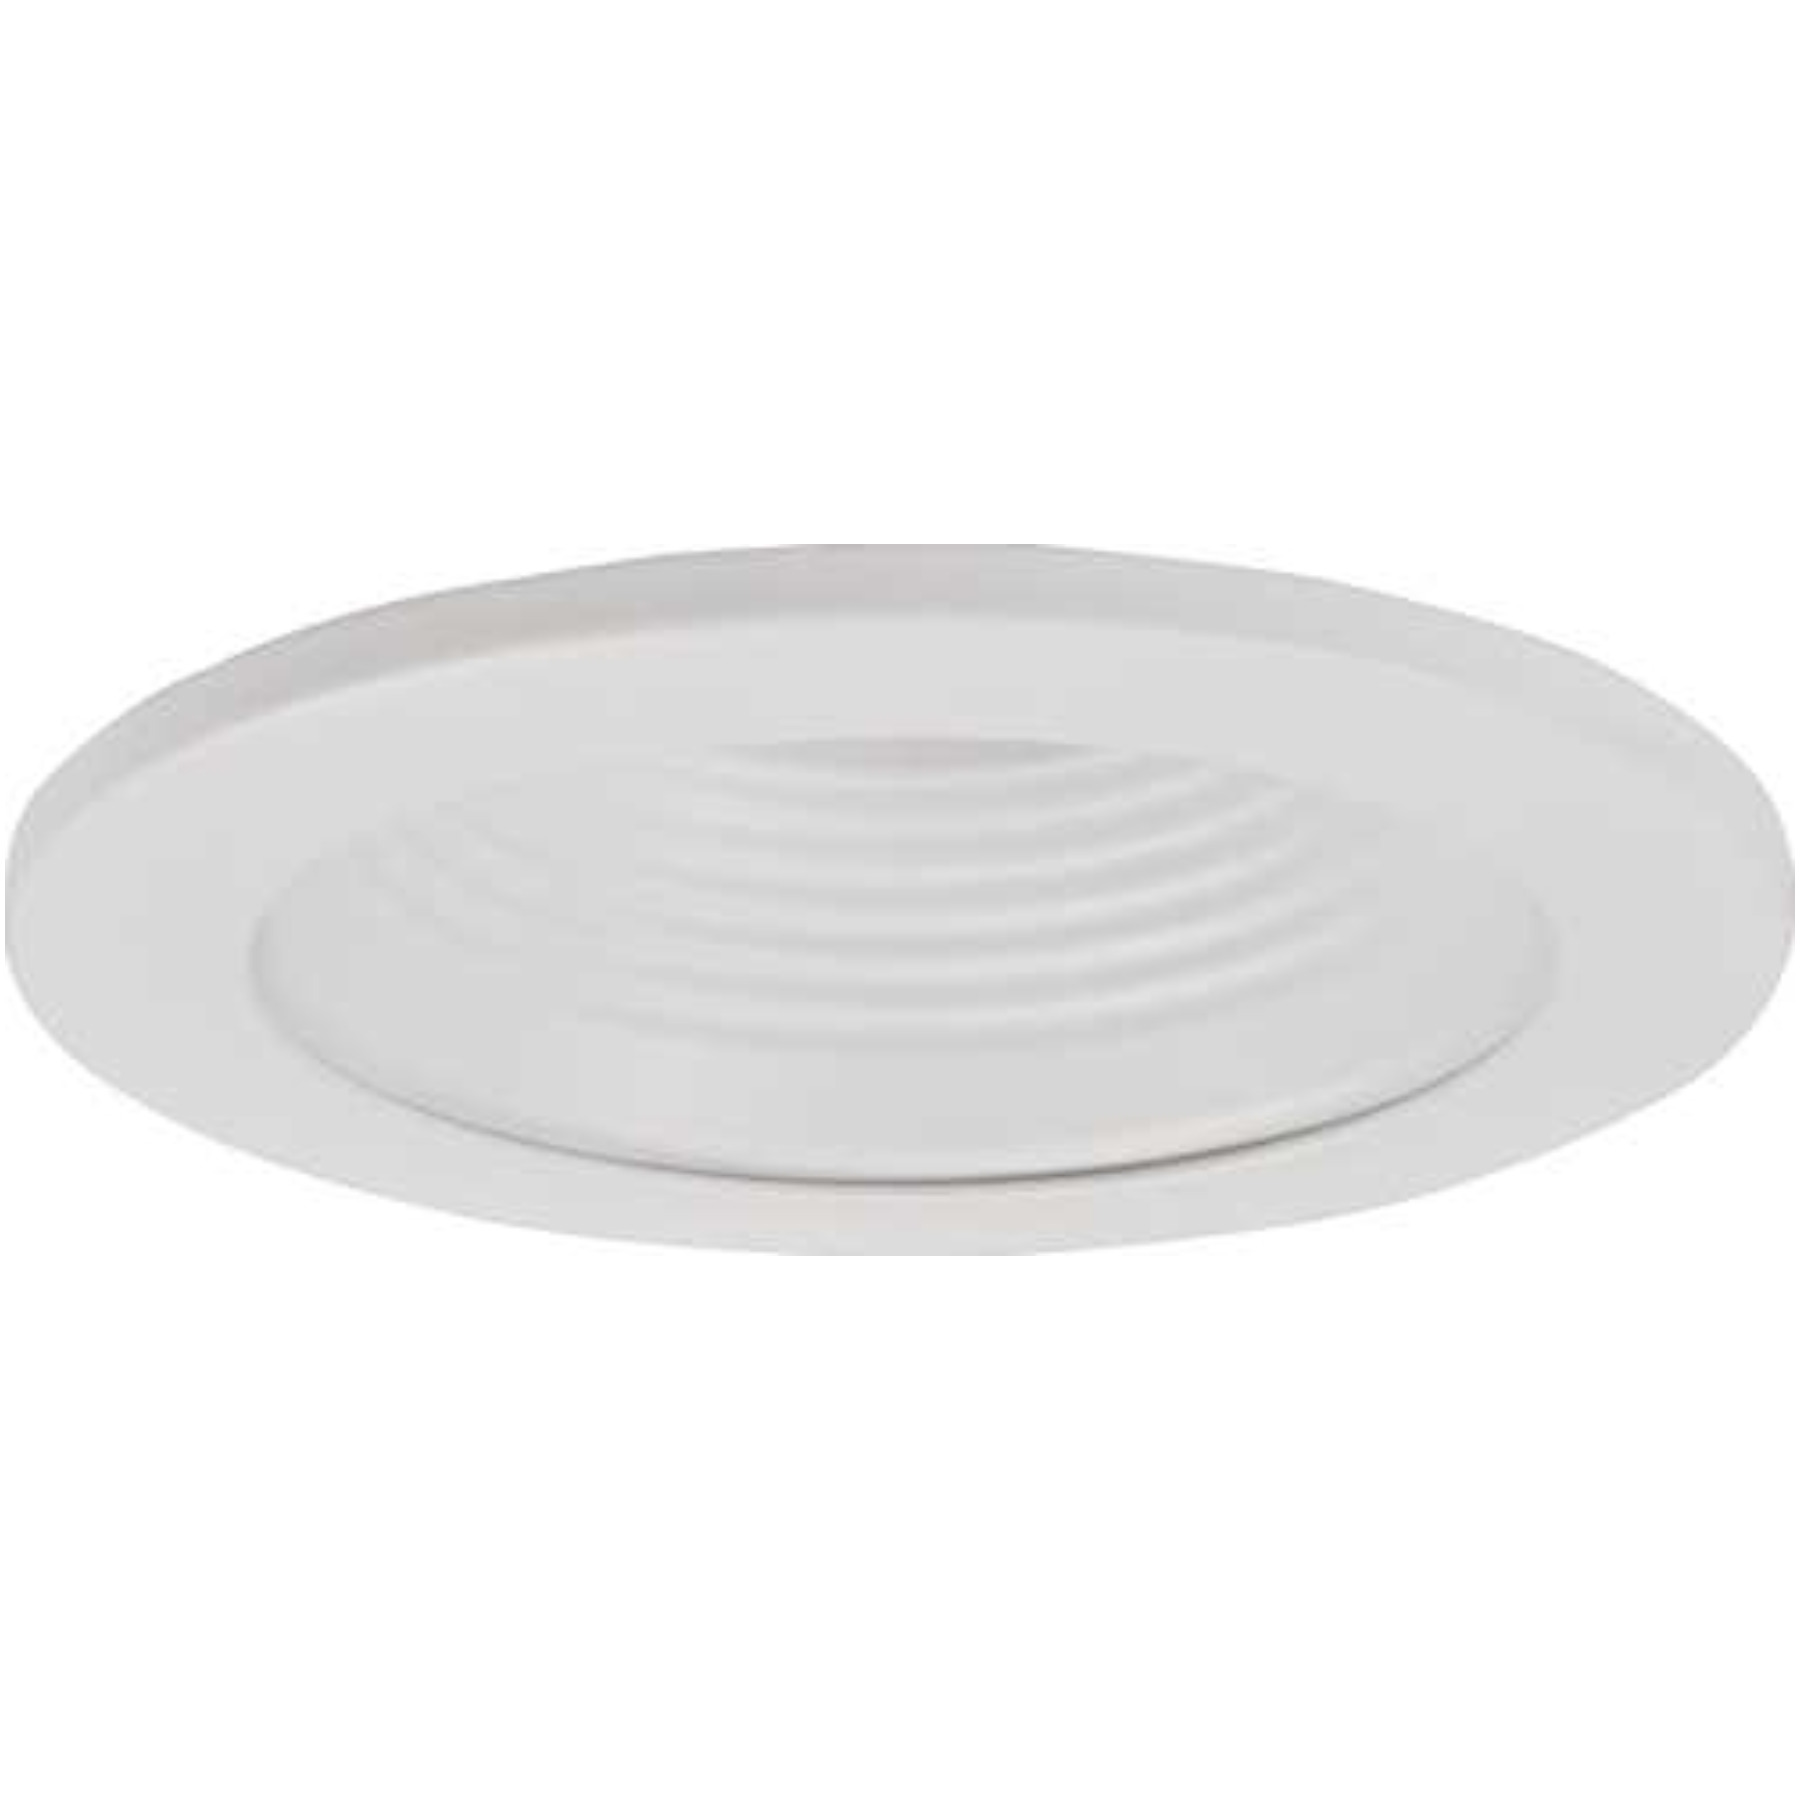 "MONUMENT RECESSED LIGHTING UNIVERSAL 4"" LOW VOLTAGE WHITE BAFFLE WITH WHITE TRIM RINGS INCLUDES CLEAR GLASS LENS"